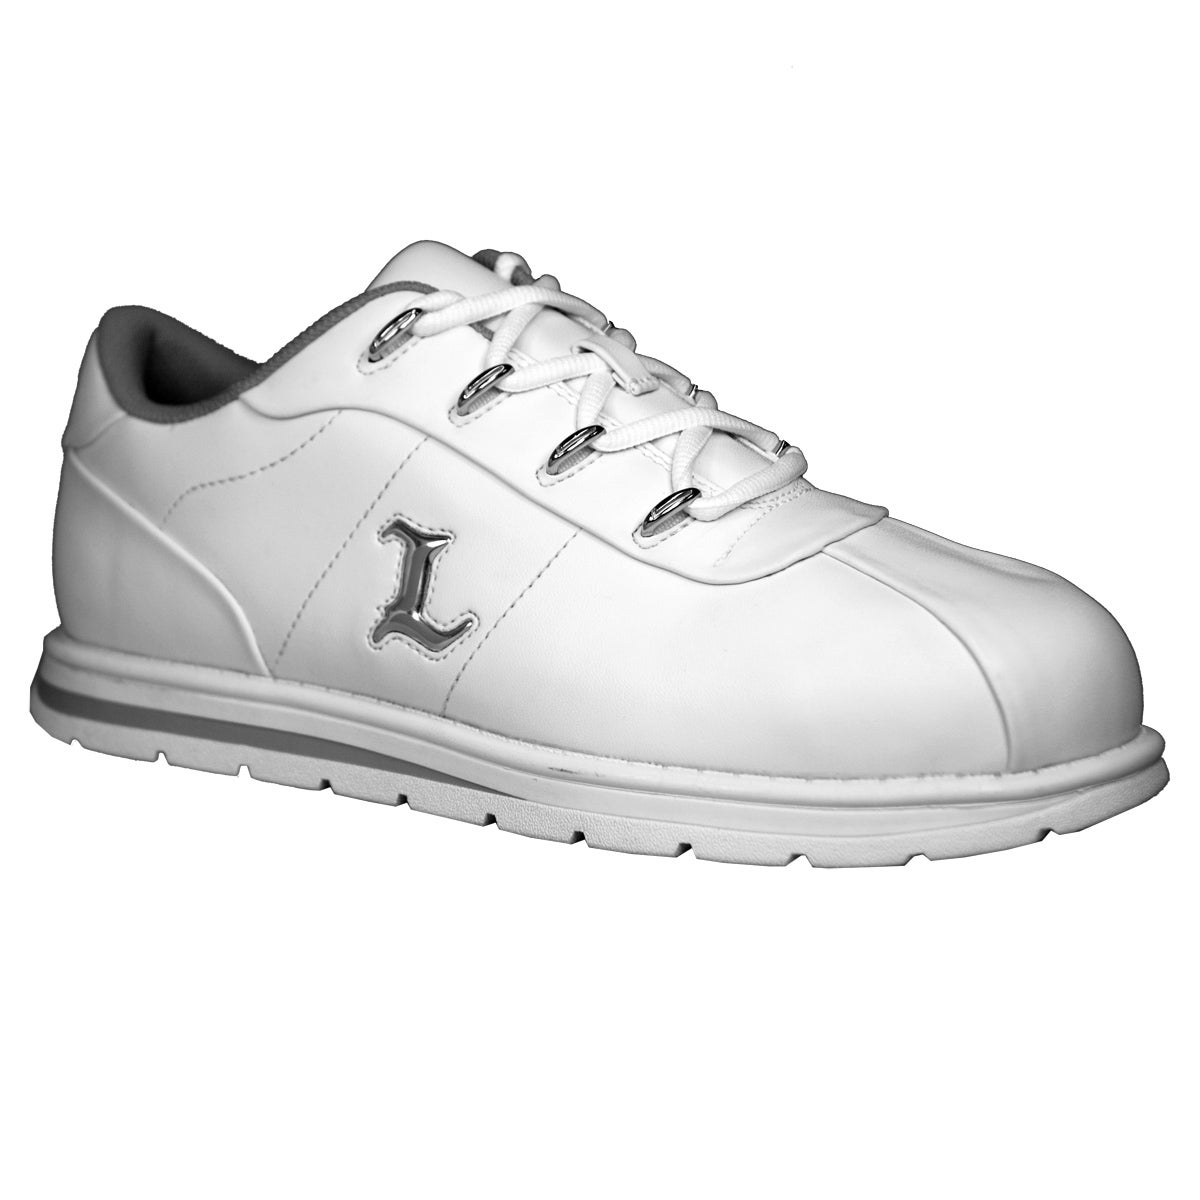 Lugz Men's 'Zrocs DX' White/ Grey Sneakers